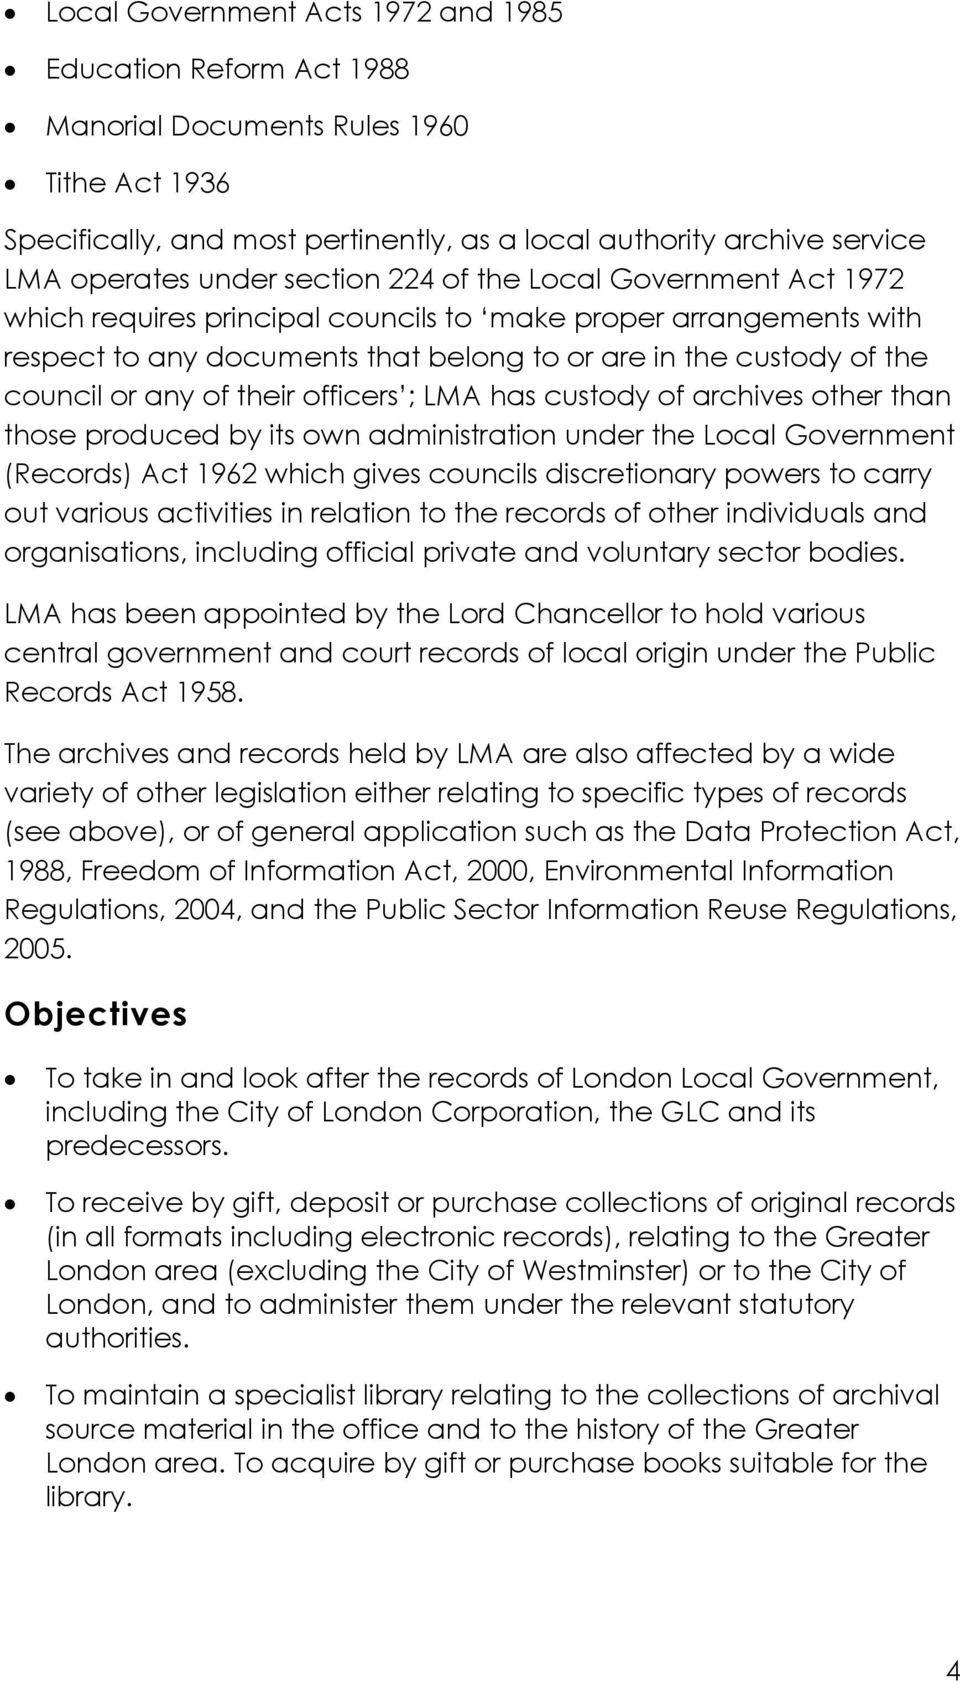 their officers ; LMA has custody of archives other than those produced by its own administration under the Local Government (Records) Act 1962 which gives councils discretionary powers to carry out